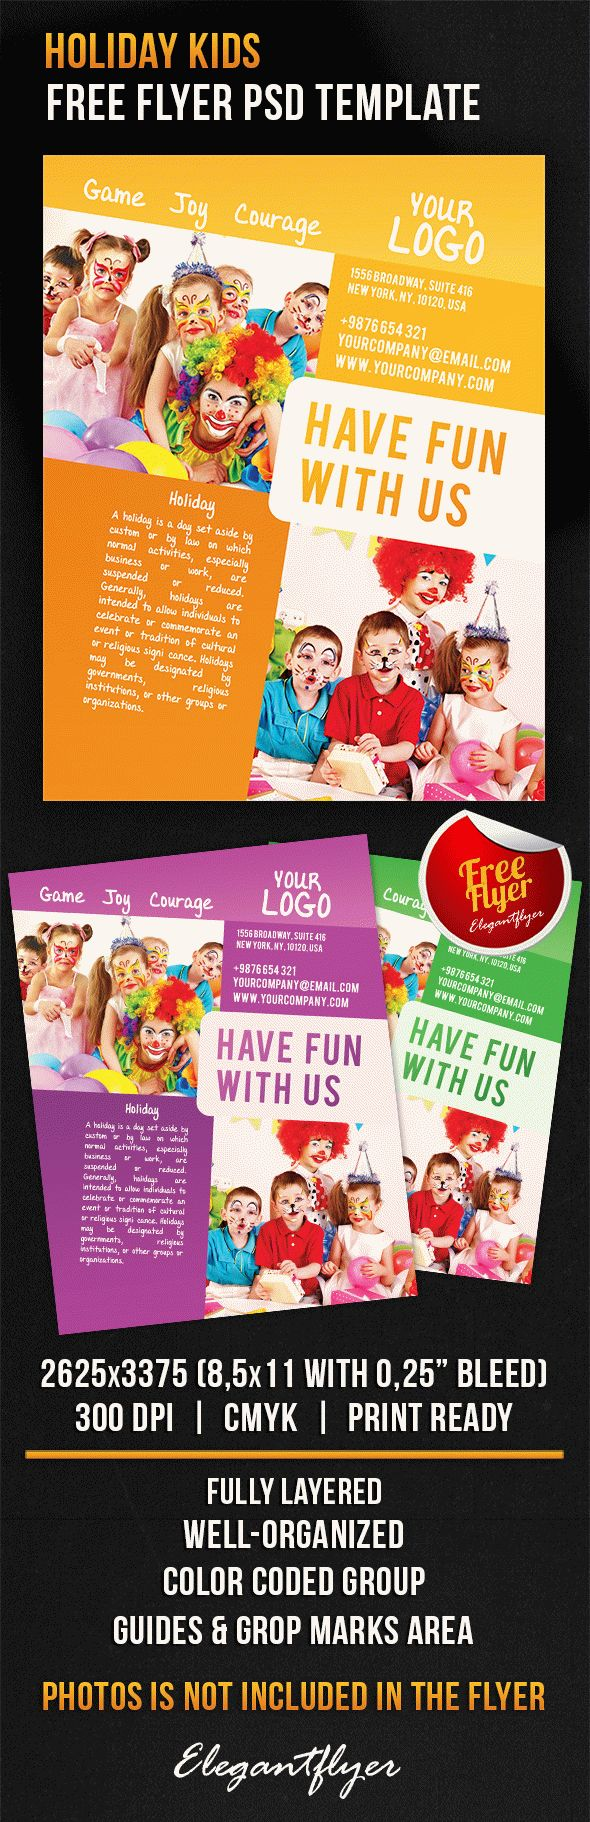 Holiday Kids – Free Flyer PSD Template